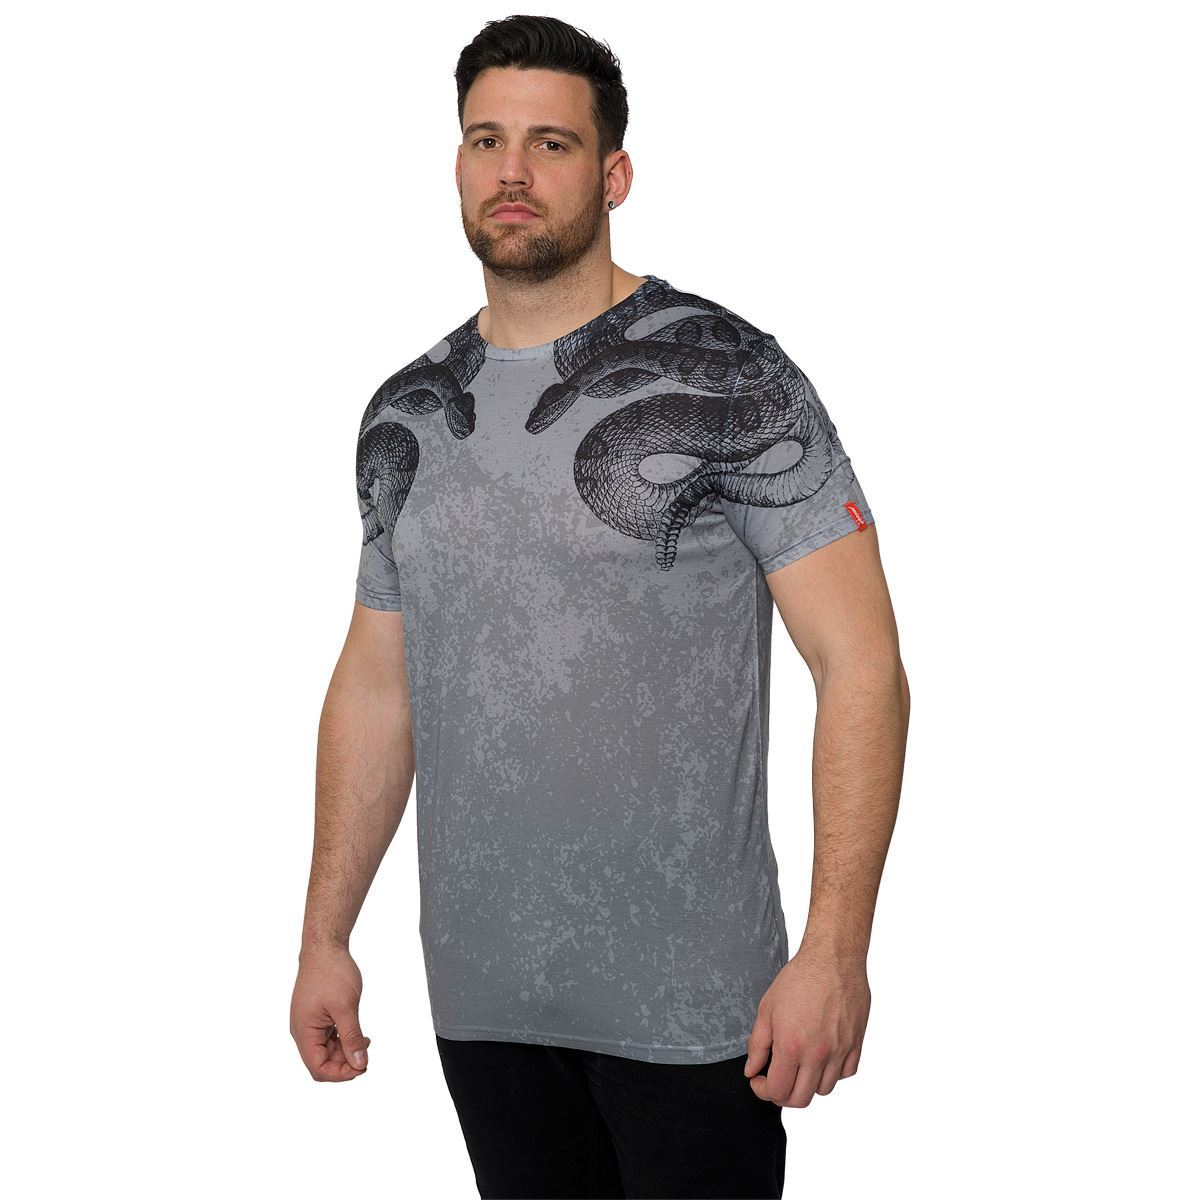 hop plus size t shirts for women on sale with wholesale cheap price and fast delivery, and find more womens plus size graphic tees, tuinc t-shirts, V-neck tees online with drop shipping.